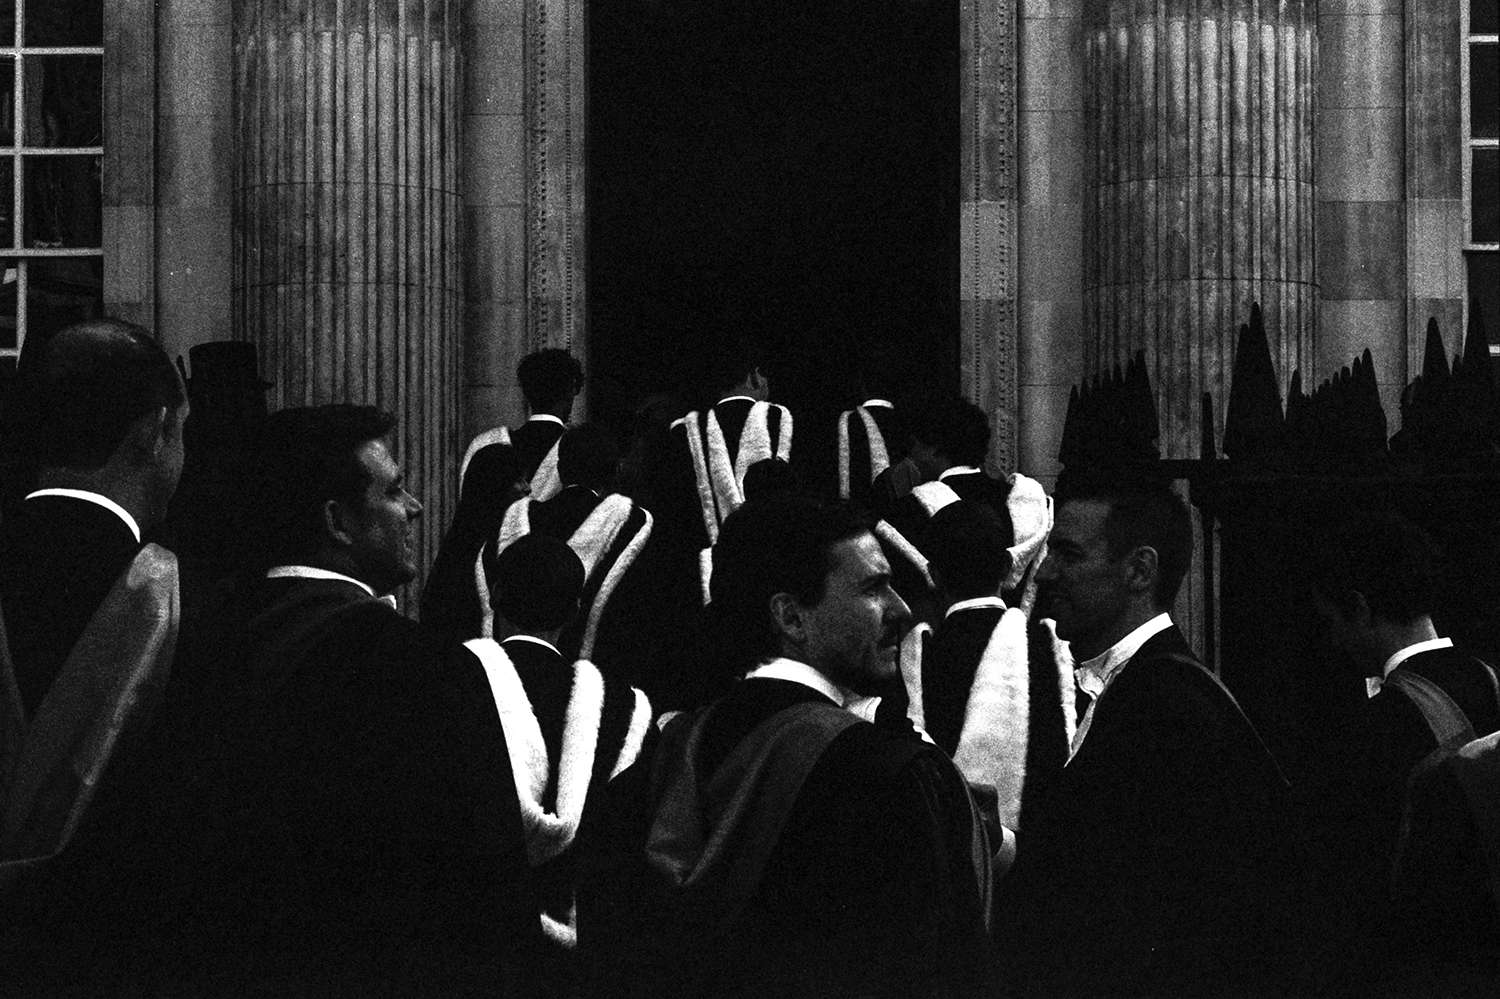 Soon-to-be graduates from one of the Cambridge University colleges line up in procession to enter their graduation ceremony. I intentionally underexposed to create a stark contrast between the black and white of their robes.